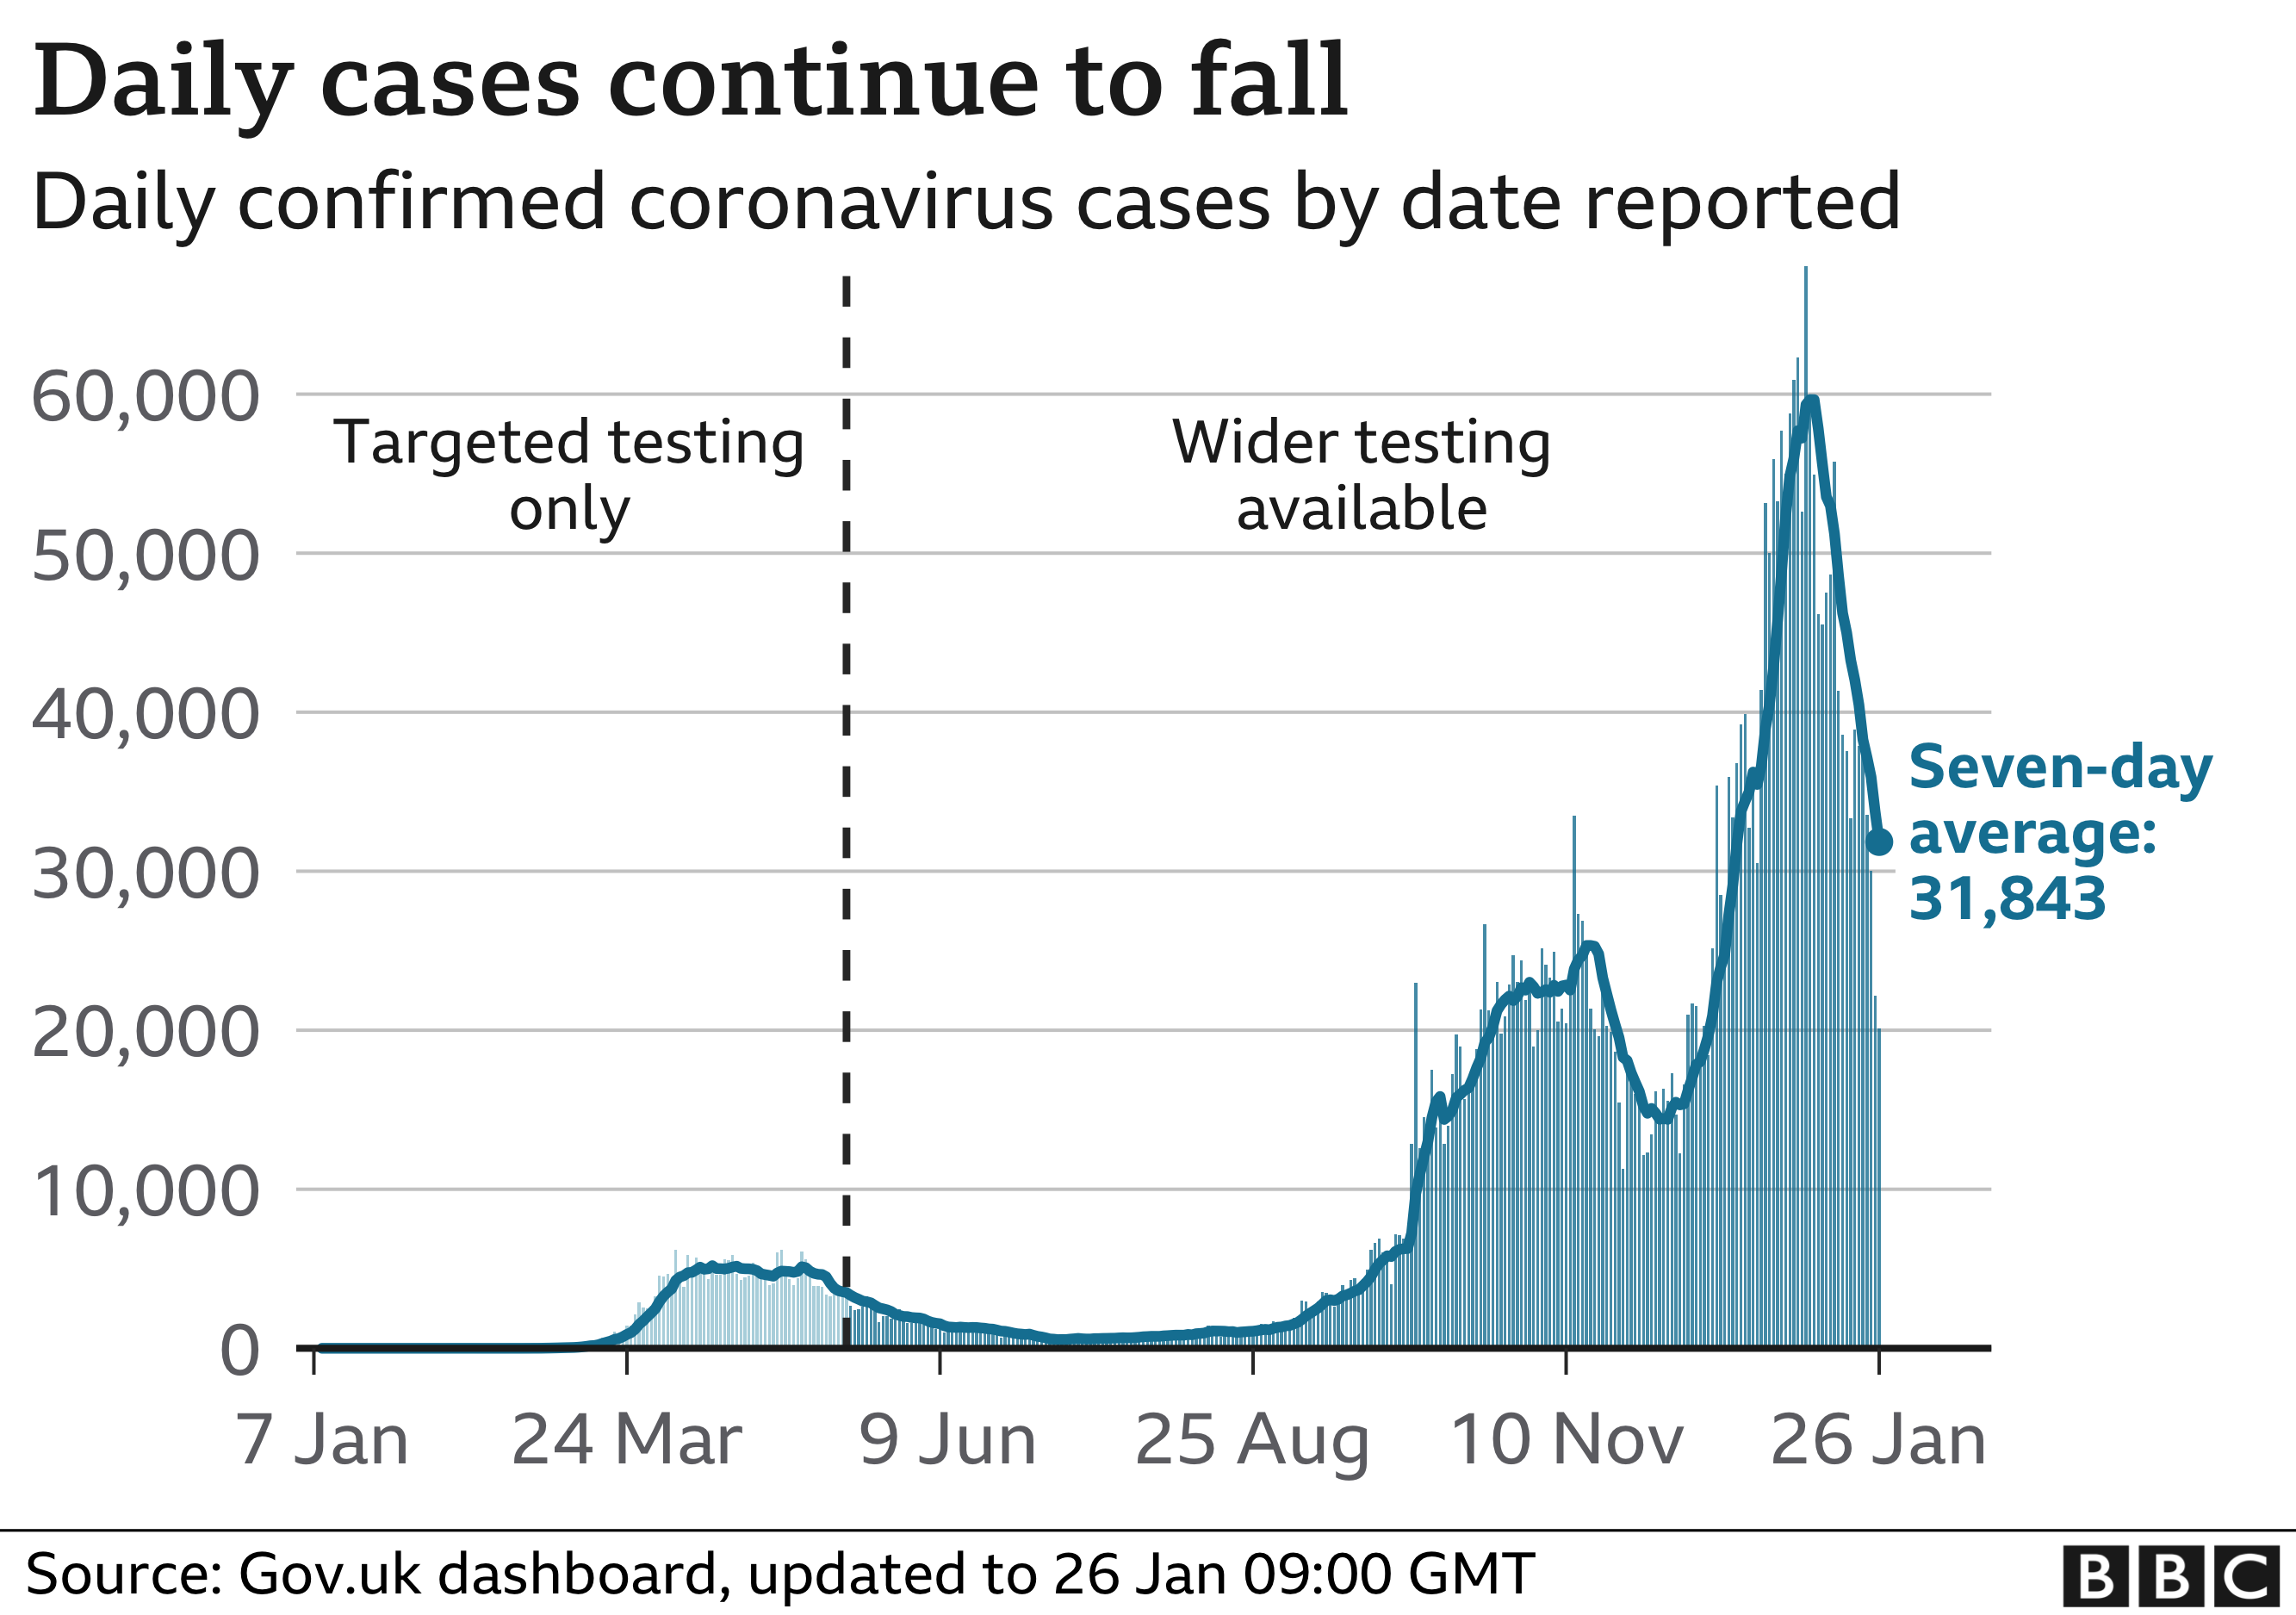 Chart shows daily cases start to fall